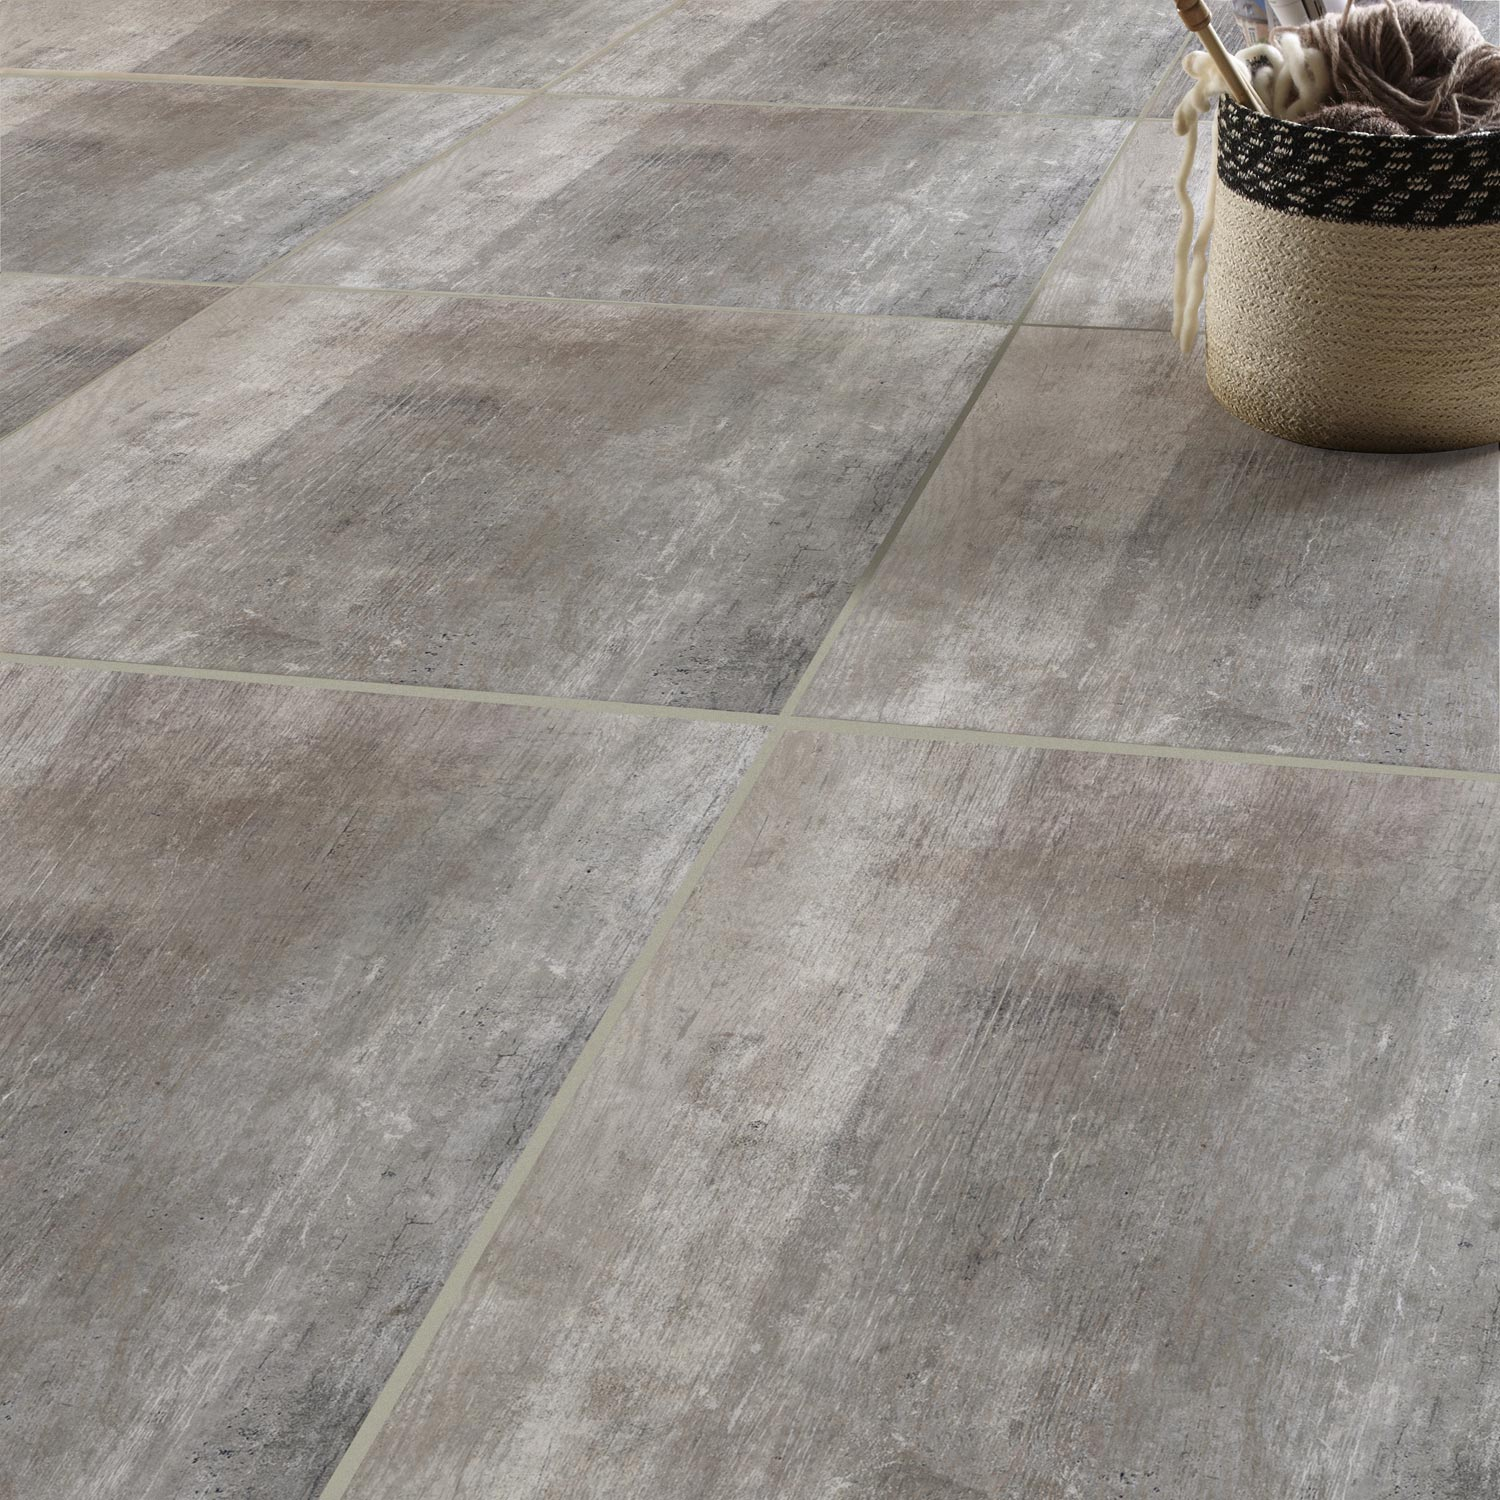 Carrelage gris 25x25 for Carrelage exterieur bleu